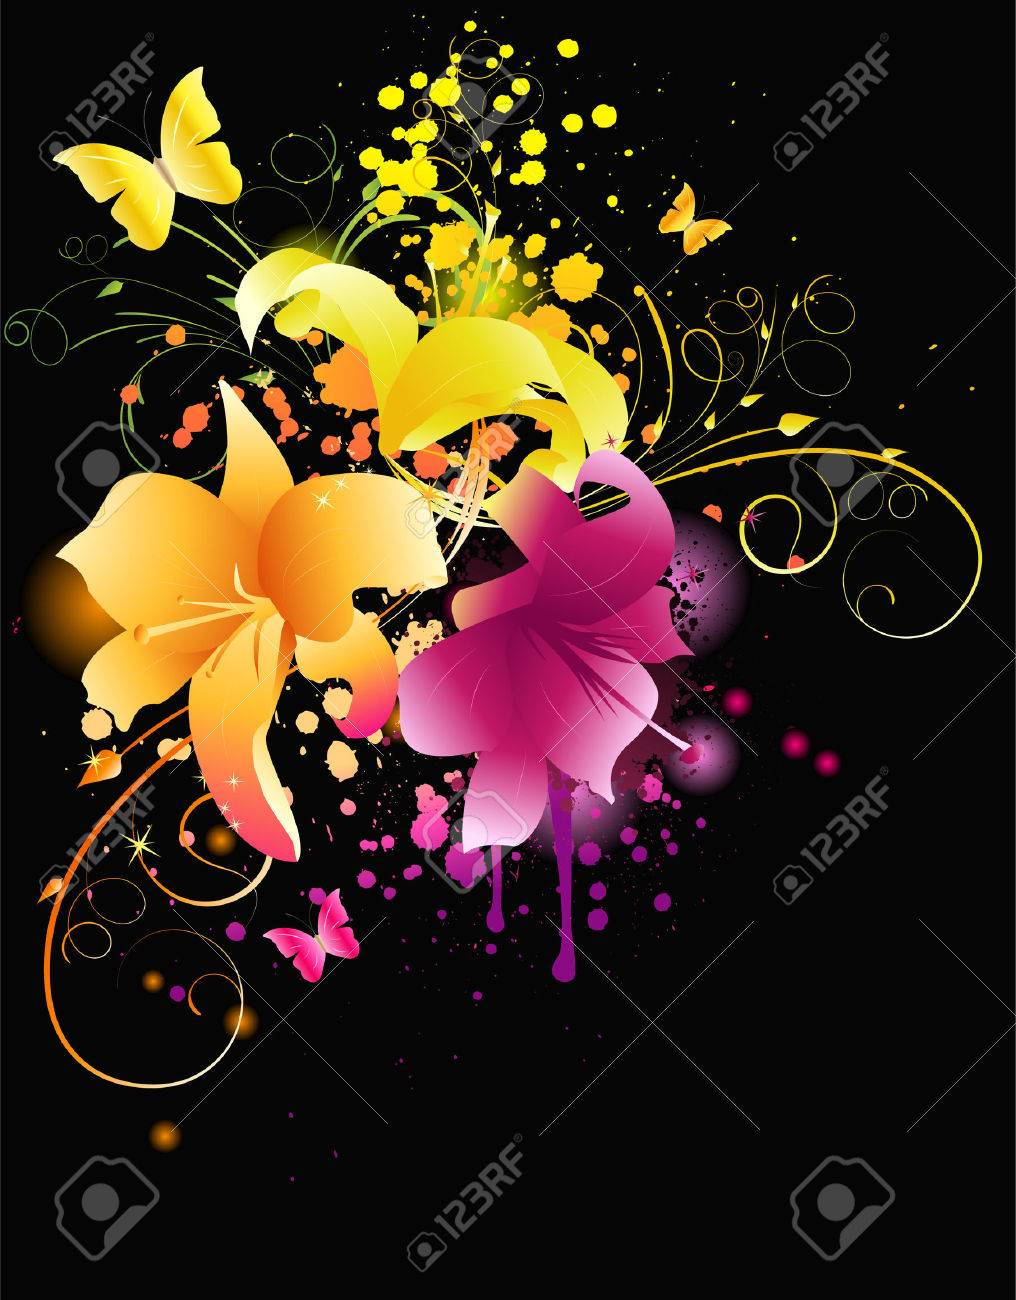 Glowing lily flowers with florals elements and grunge background Stock Vector - 9094921